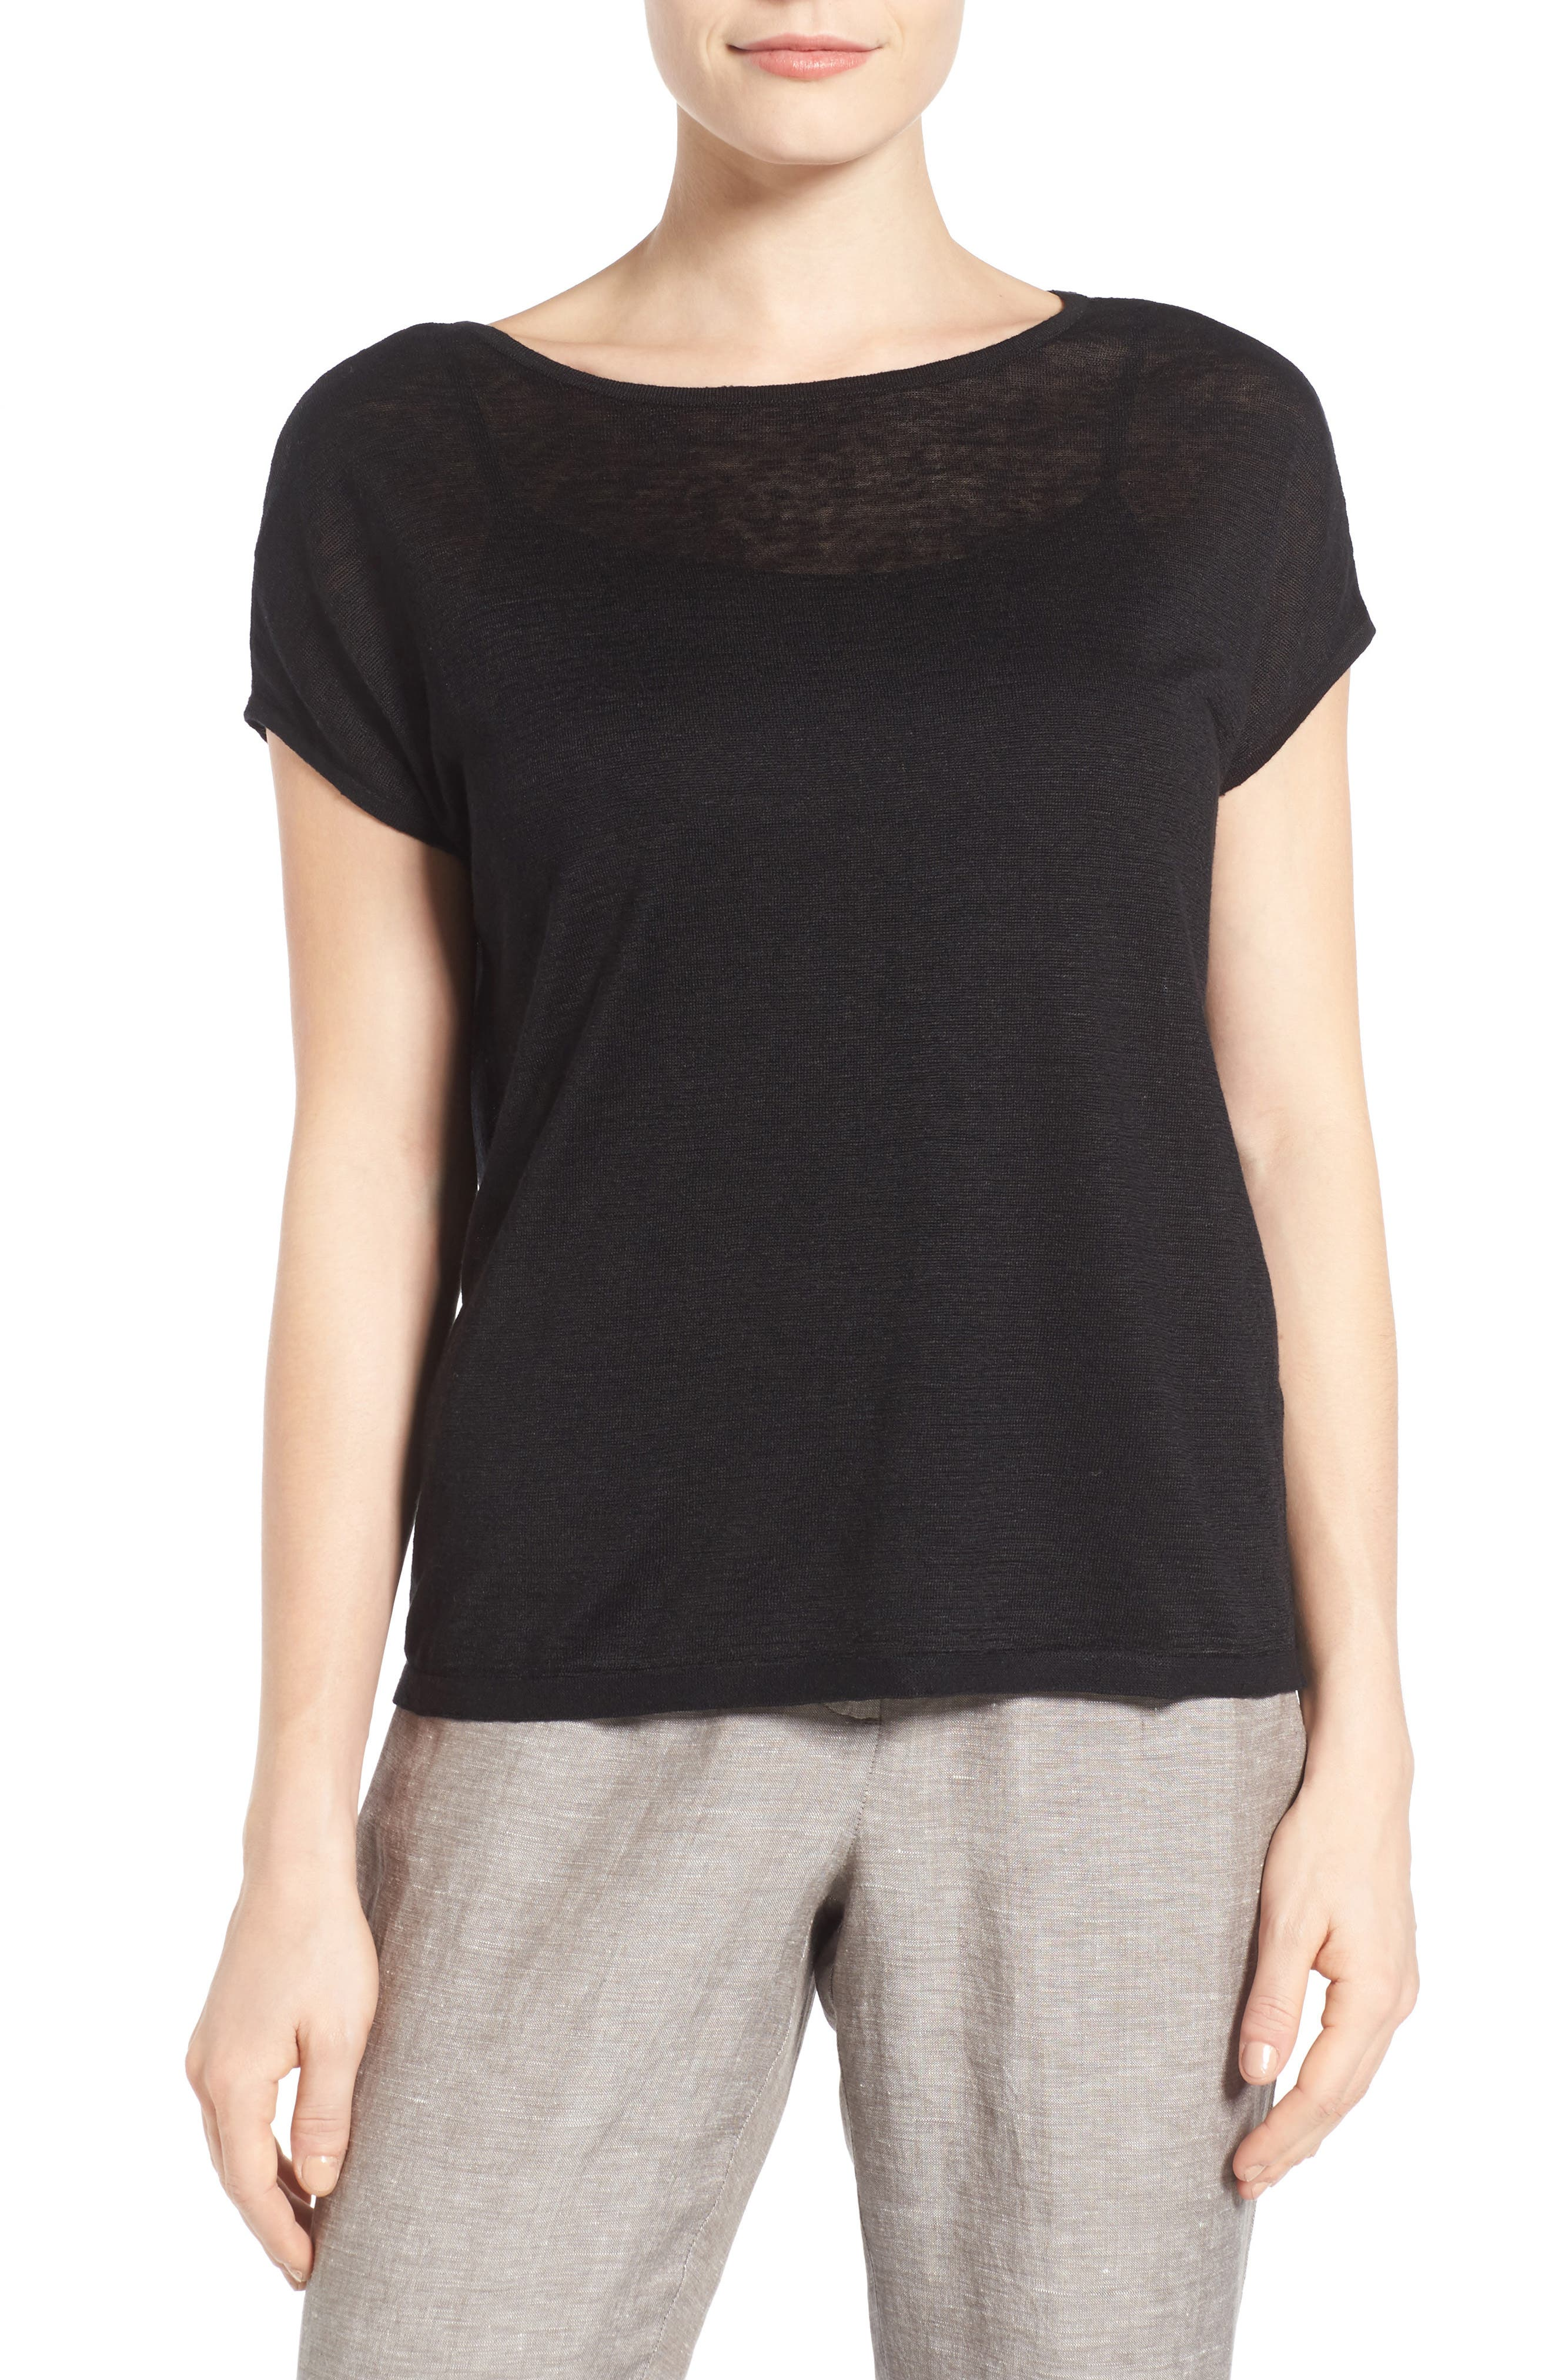 Everyday Tissue Weight Tee,                             Main thumbnail 1, color,                             Black Onyx